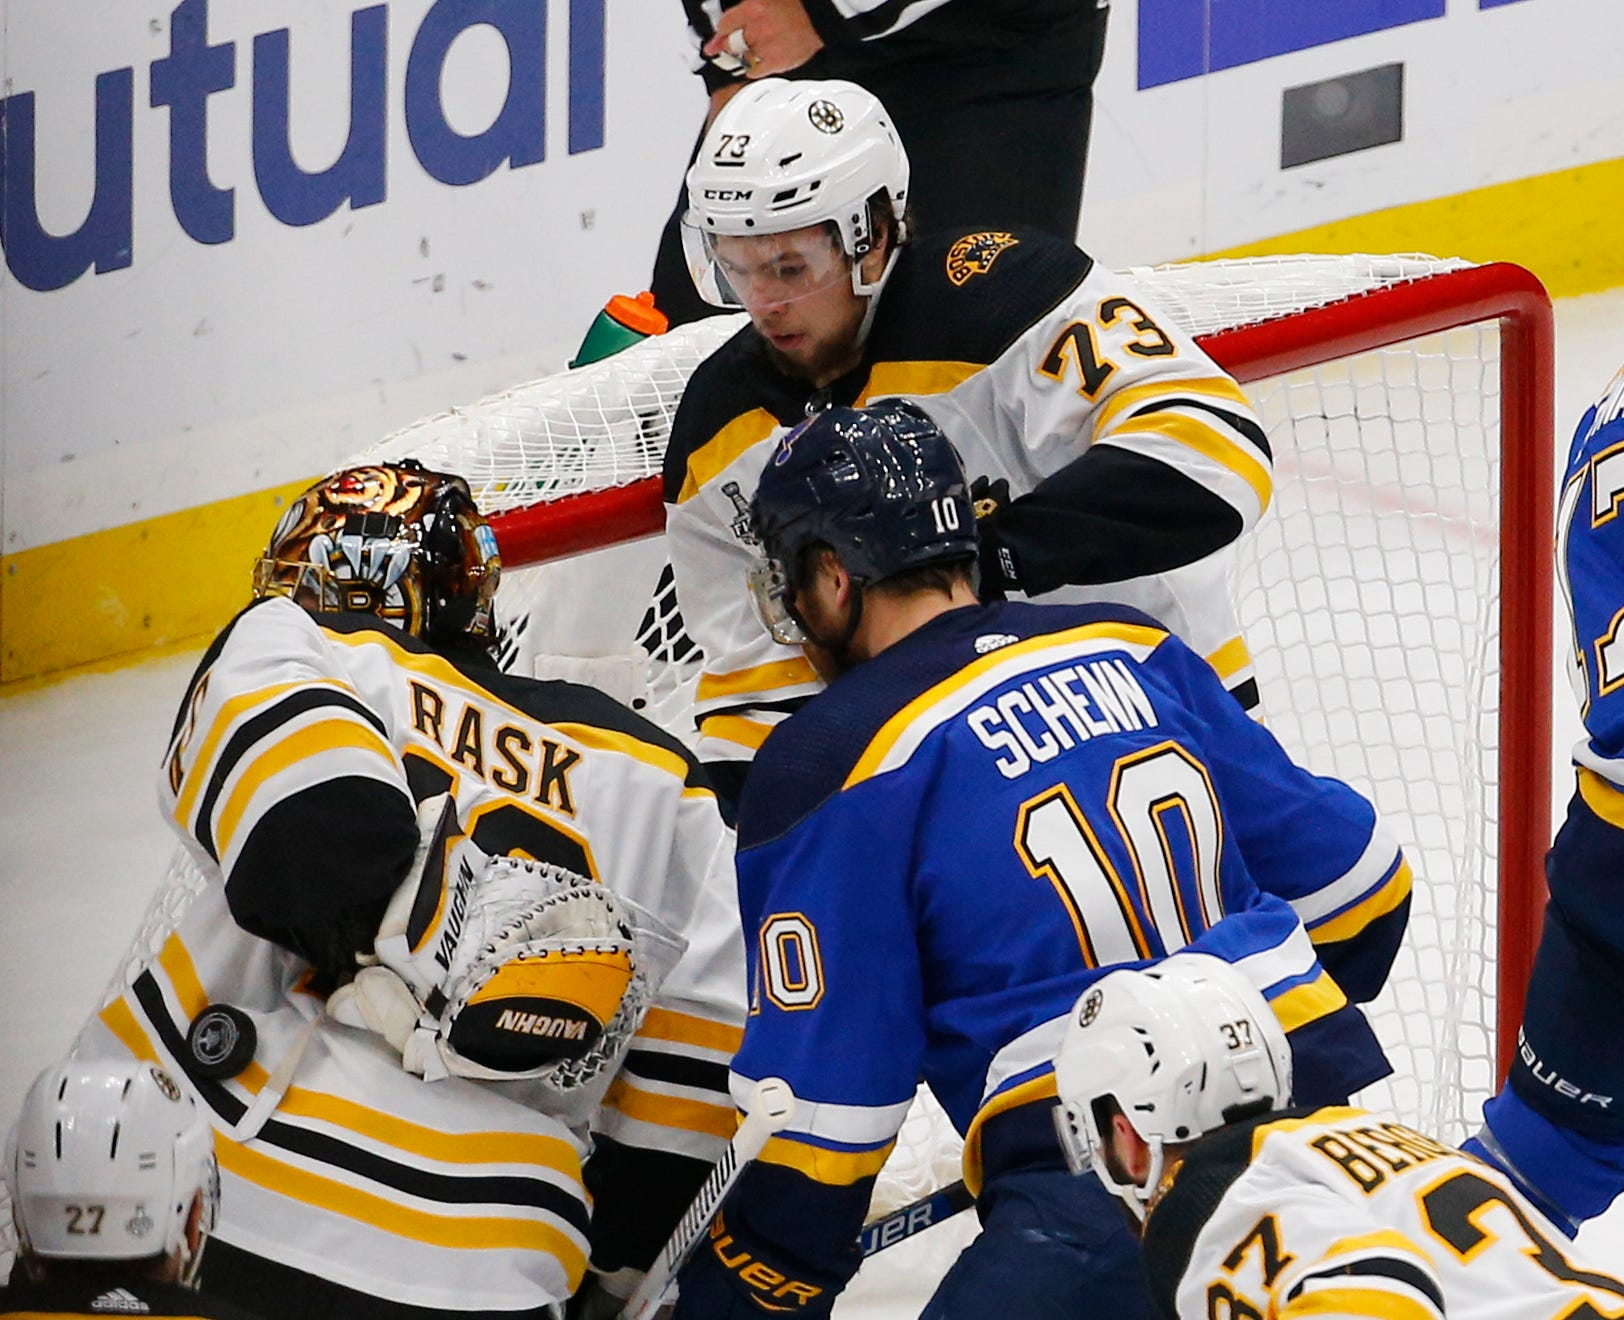 Bruins rout Blues 5-1 to force Game 7 of Stanley Cup Finals